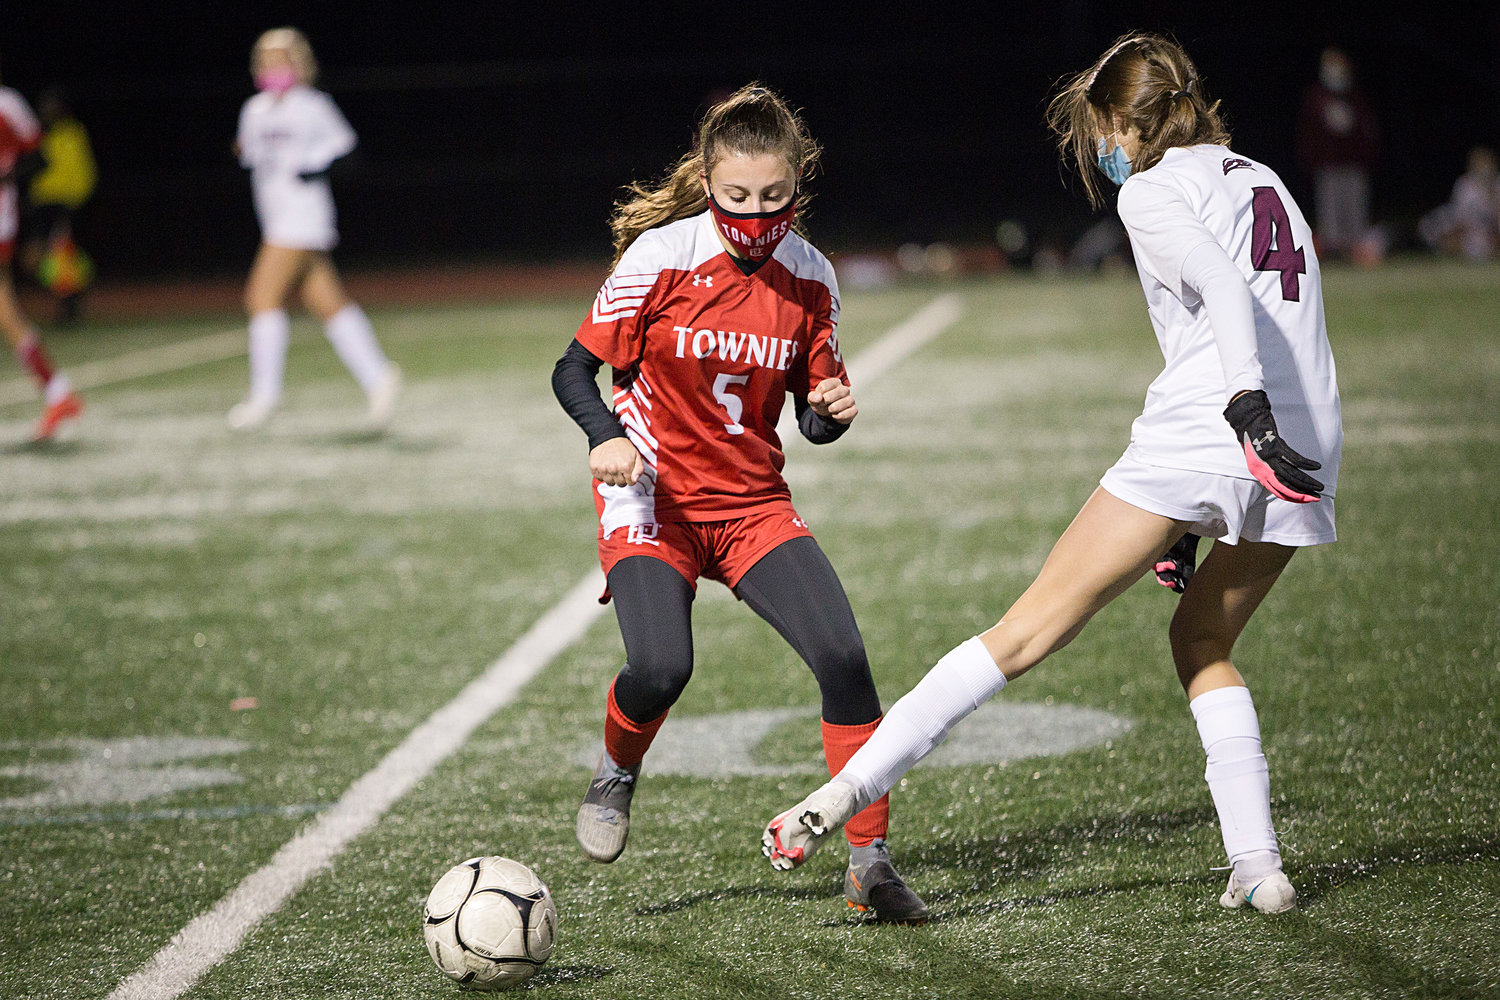 Tessa LaRoche tries to maintain possession of the ball while pressured by an East Greenwich opponent.